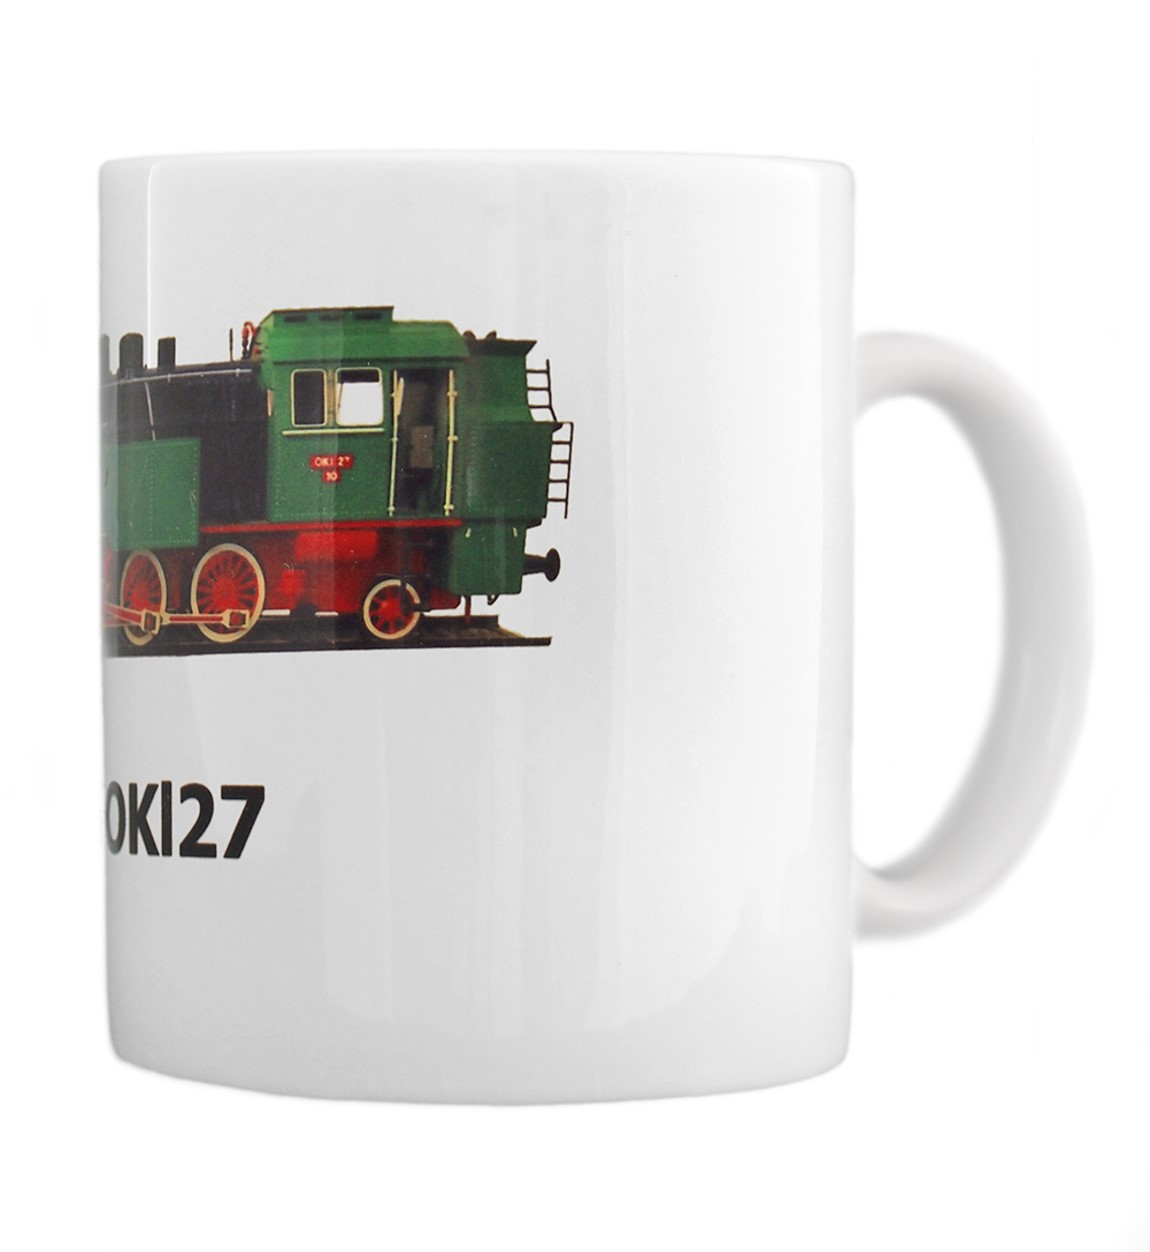 engine Okl27 mug right view